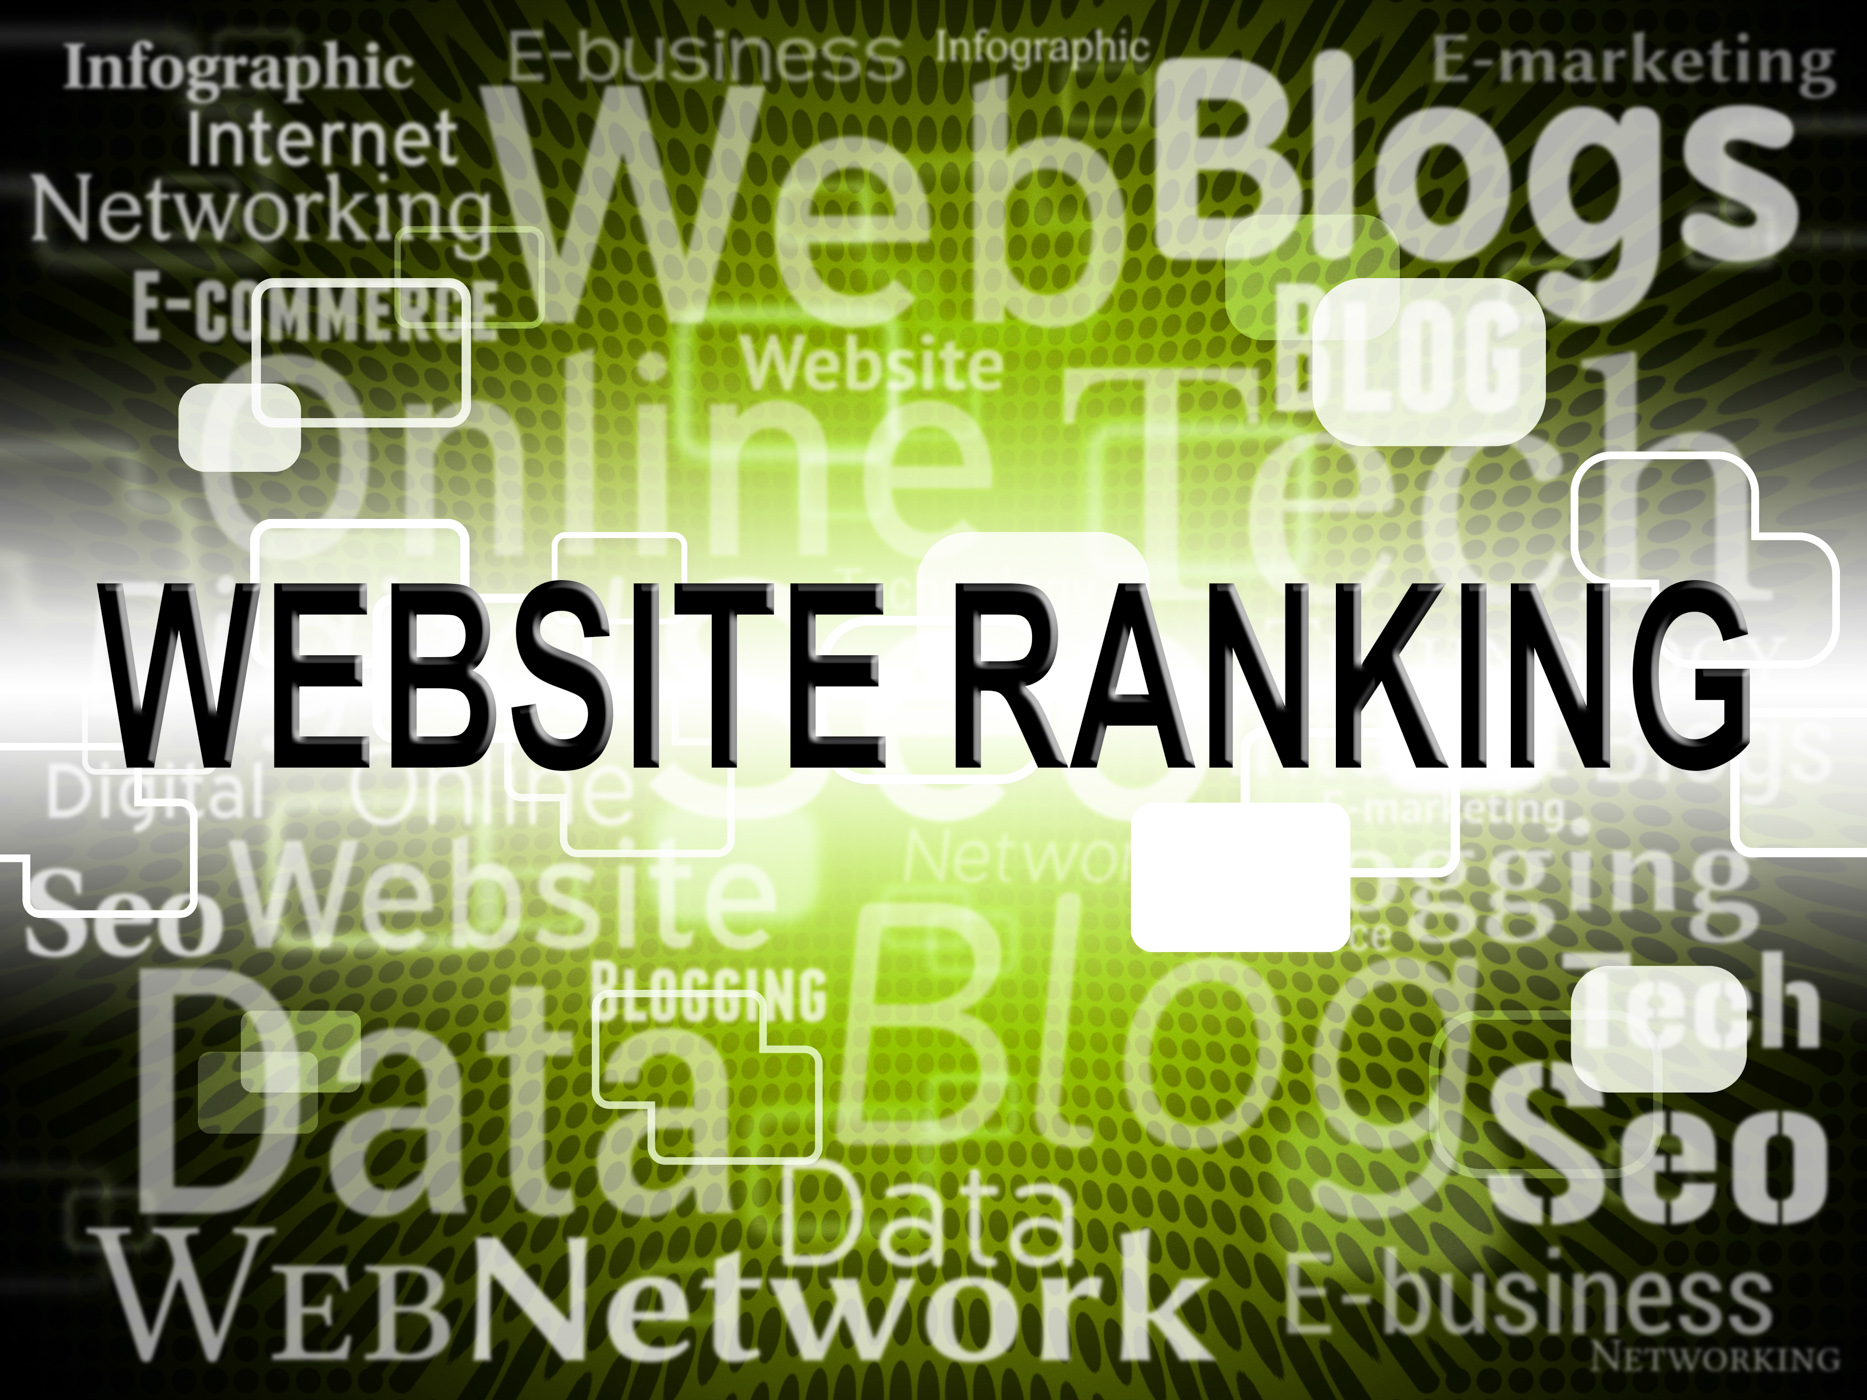 Website ranking shows search engine and internet photo